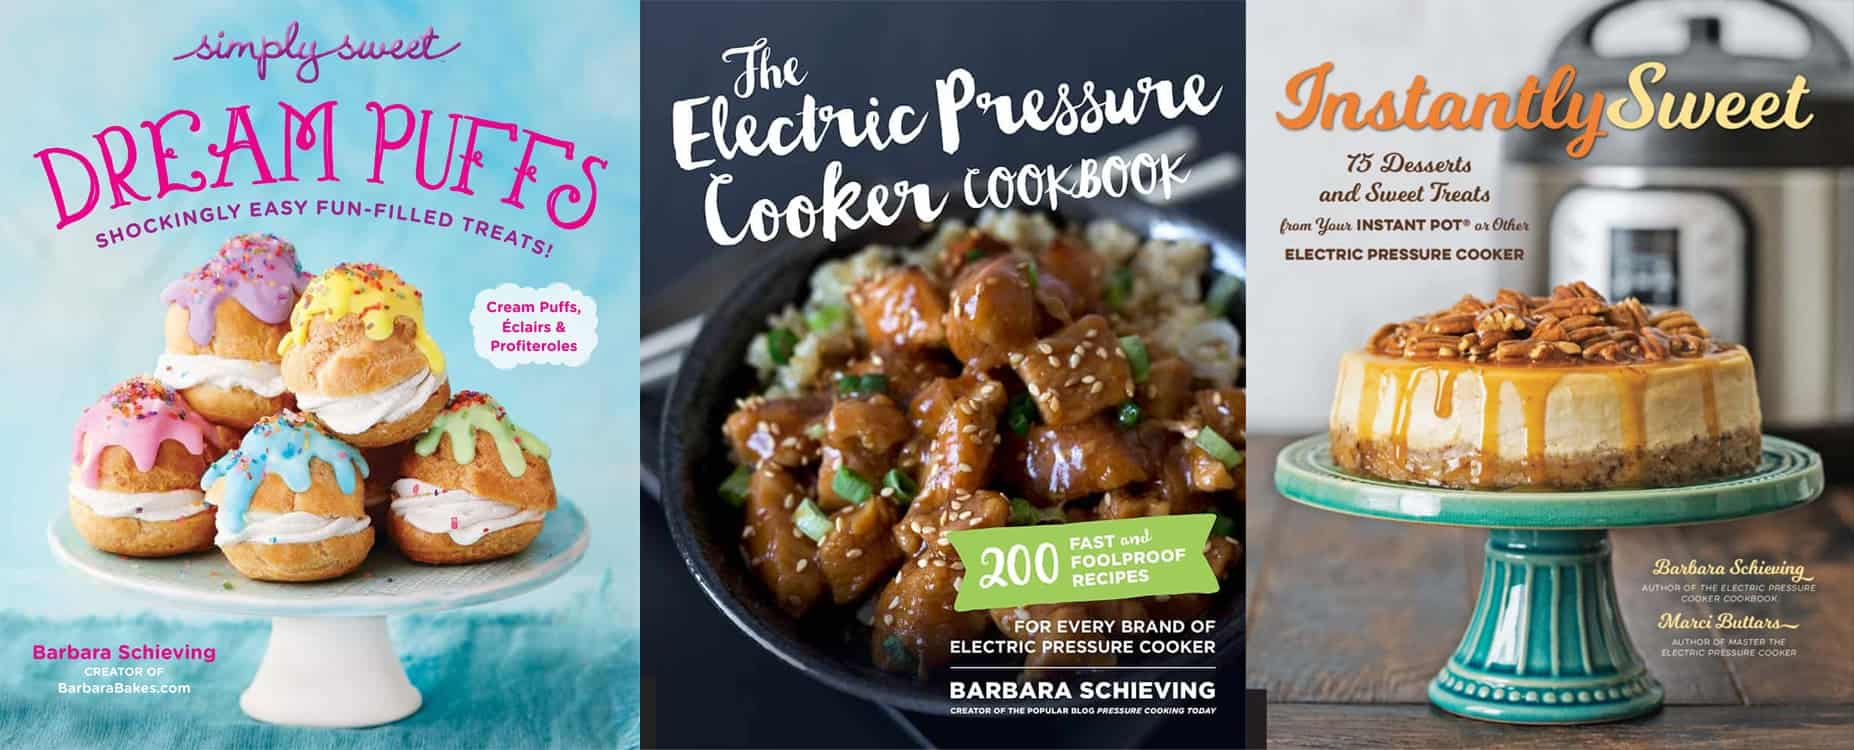 All three of Barbara Schieving's cookbooks: Dream Puffs, The Electric Pressure Cooker Cookbook, and Instantly Sweet